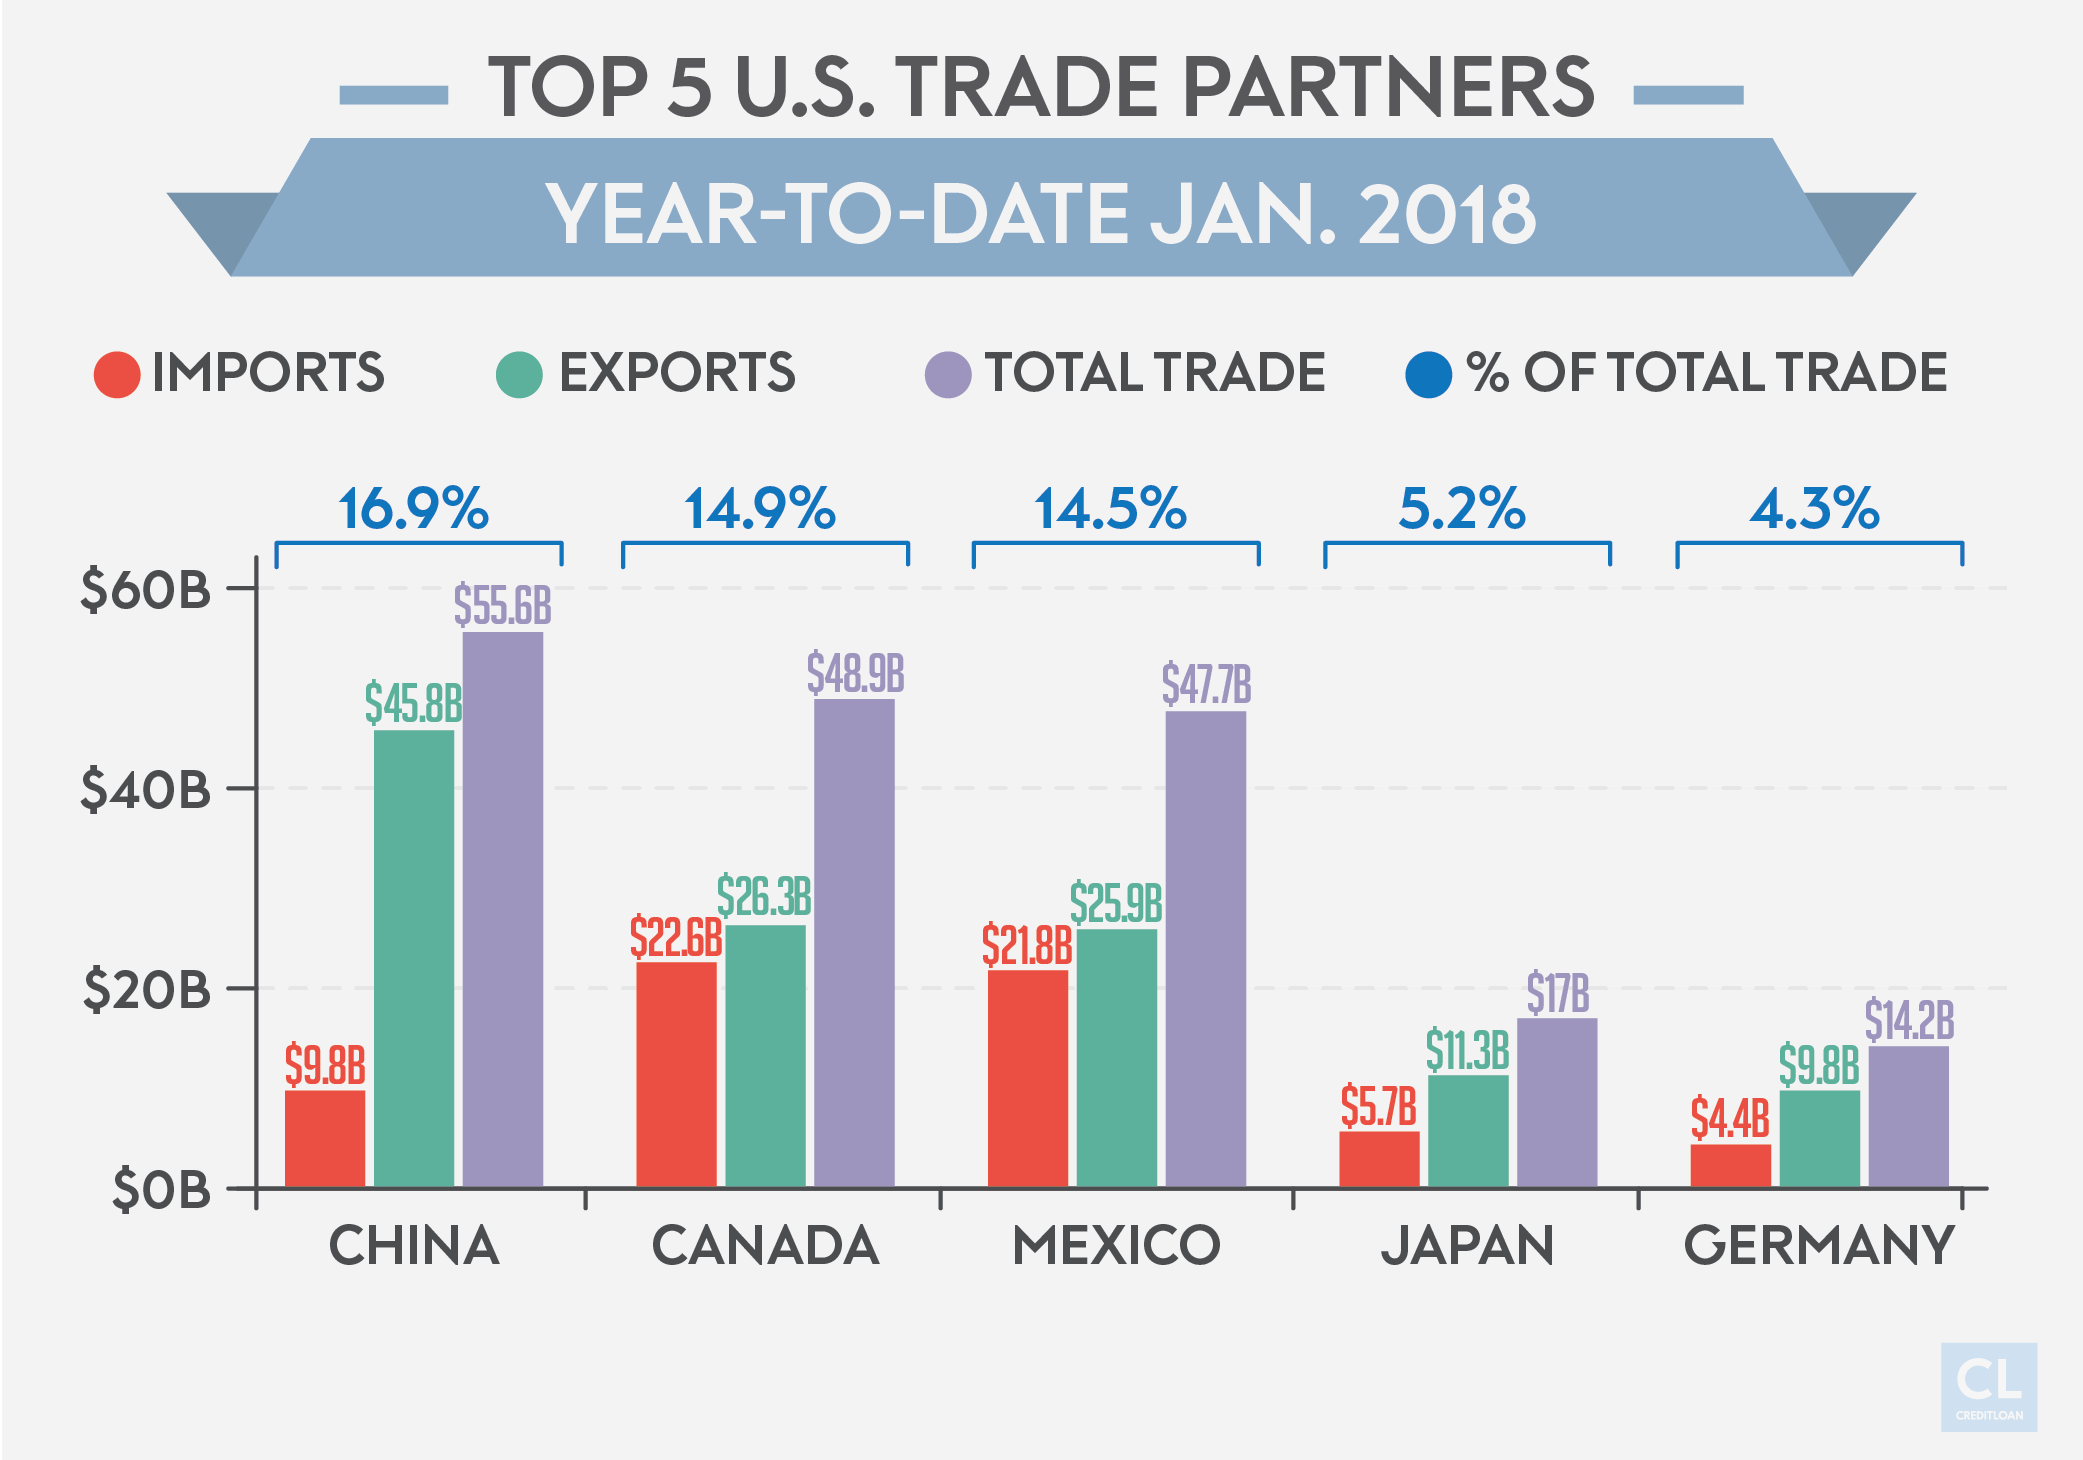 Top 5 U.S. Trade Partners Year-to-Date Jan. 2018